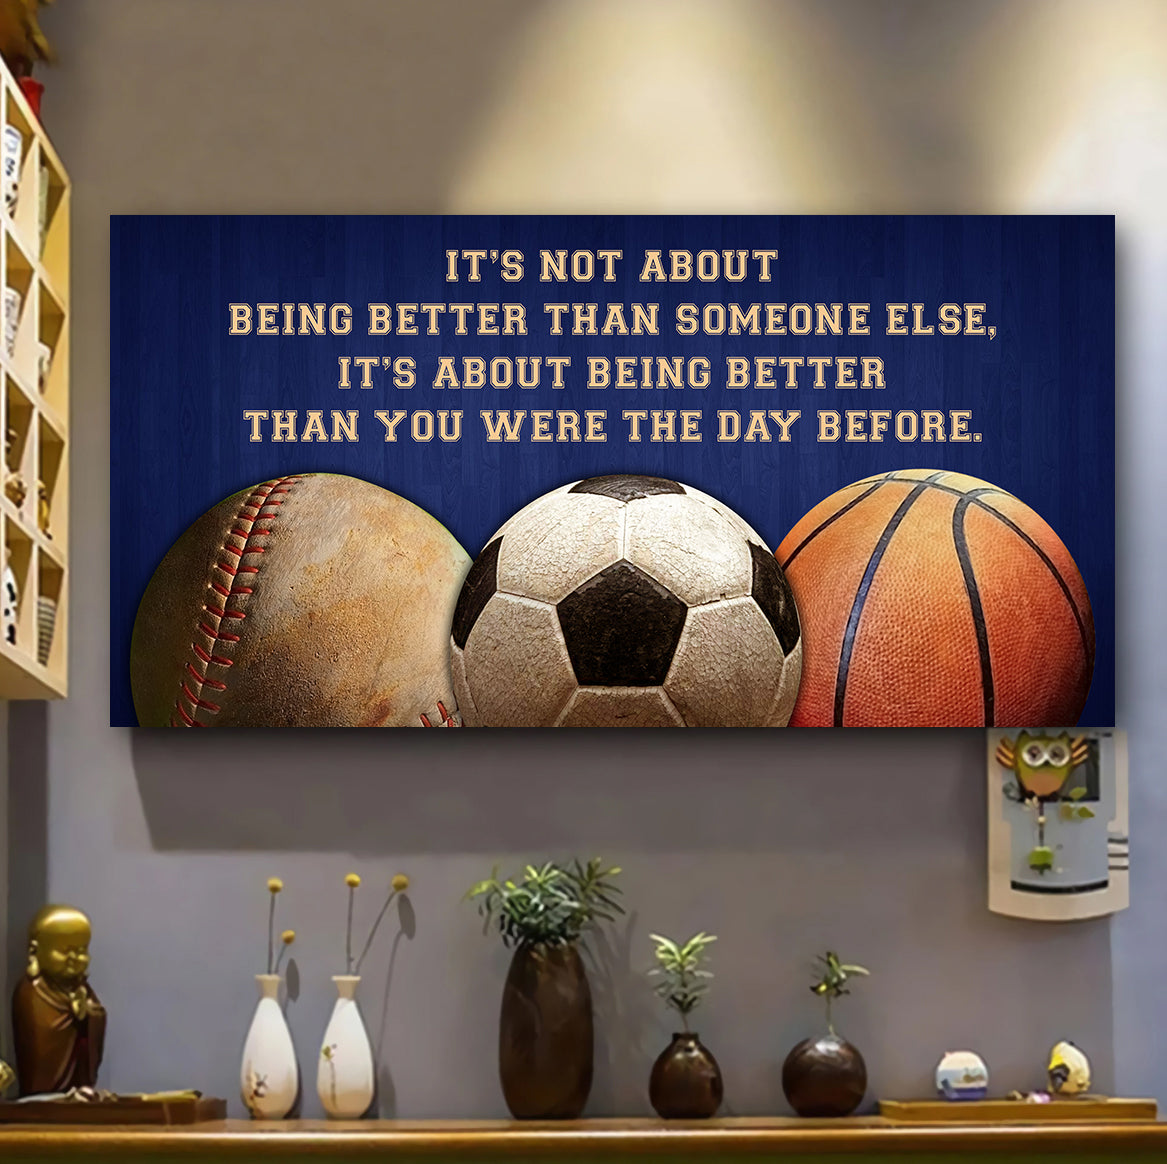 (LP347) Customizable basketball, baseball , soccer - Poster canvas - It's not about - FREE SHIPPING ON ORDERS OVER $75